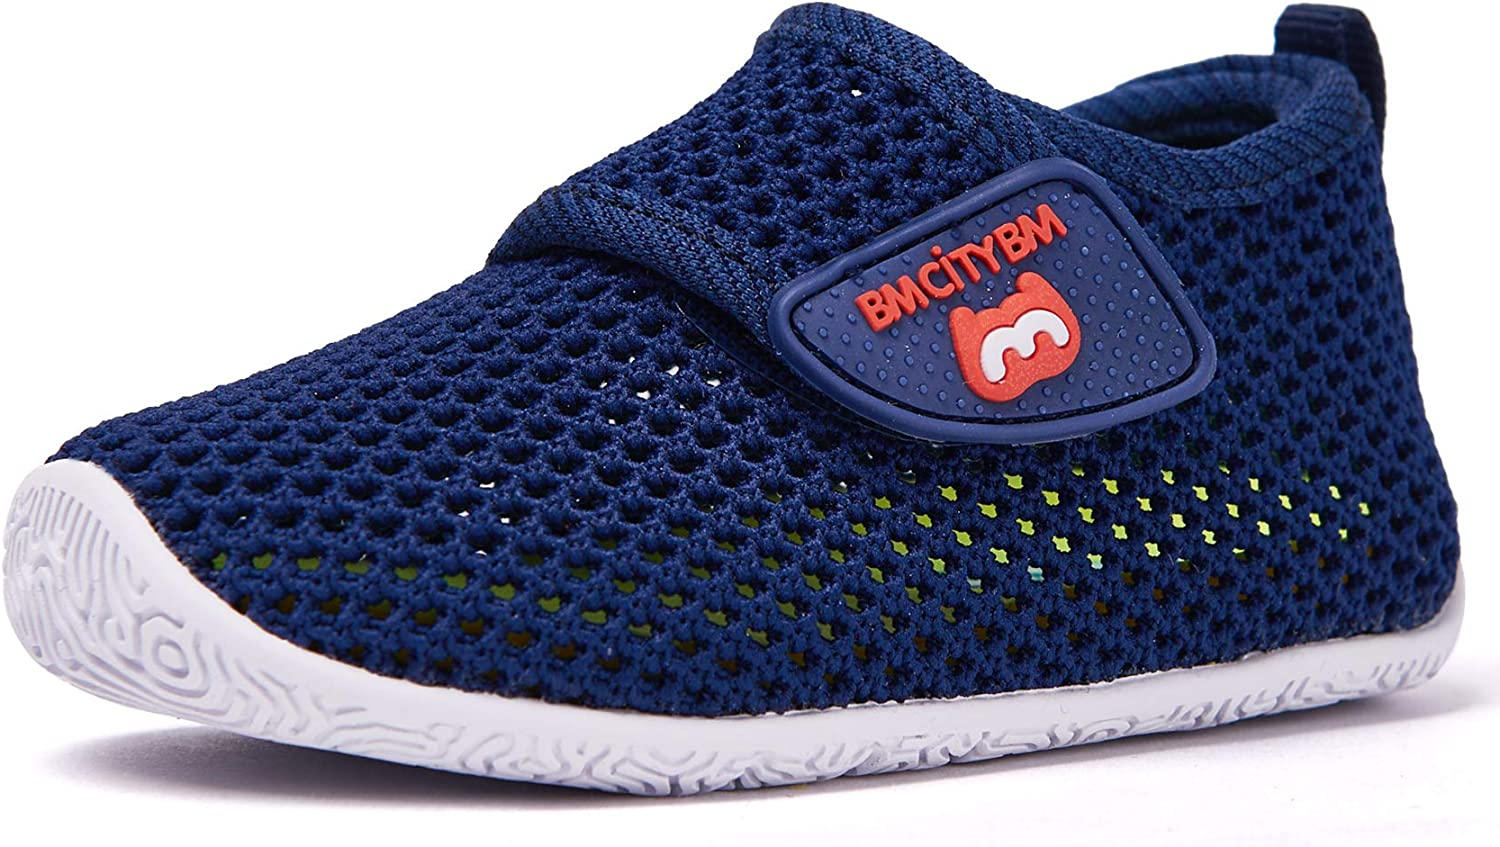 Kids Boy Girl Knitted Soft Shoes Toddler Sneakers Slip On Sports Trainers Shoes